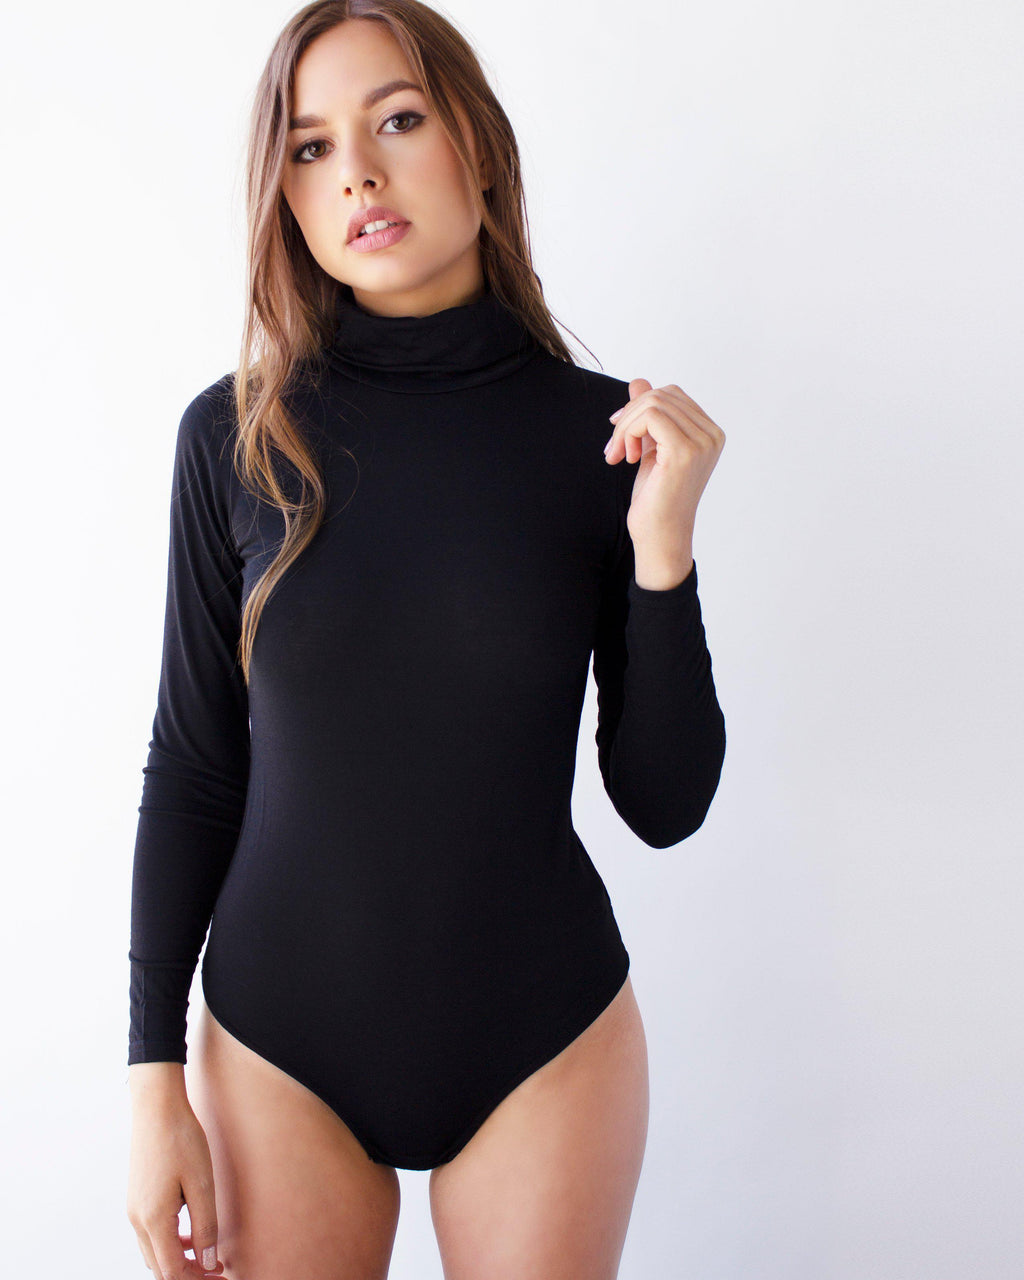 ICONIC BODYSUIT- BLACK